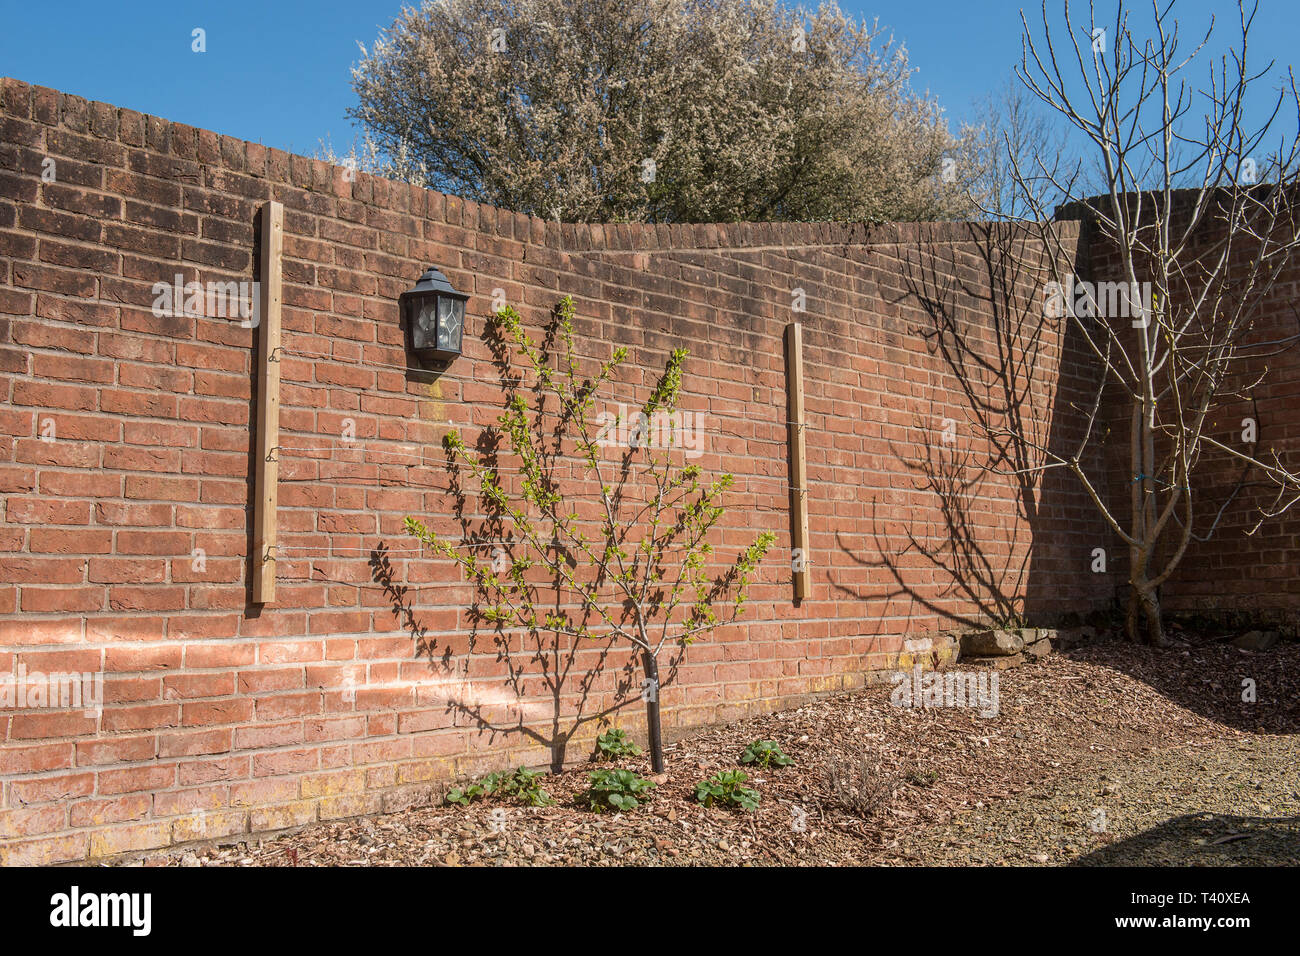 fruit trees being trained on a wall - Stock Image